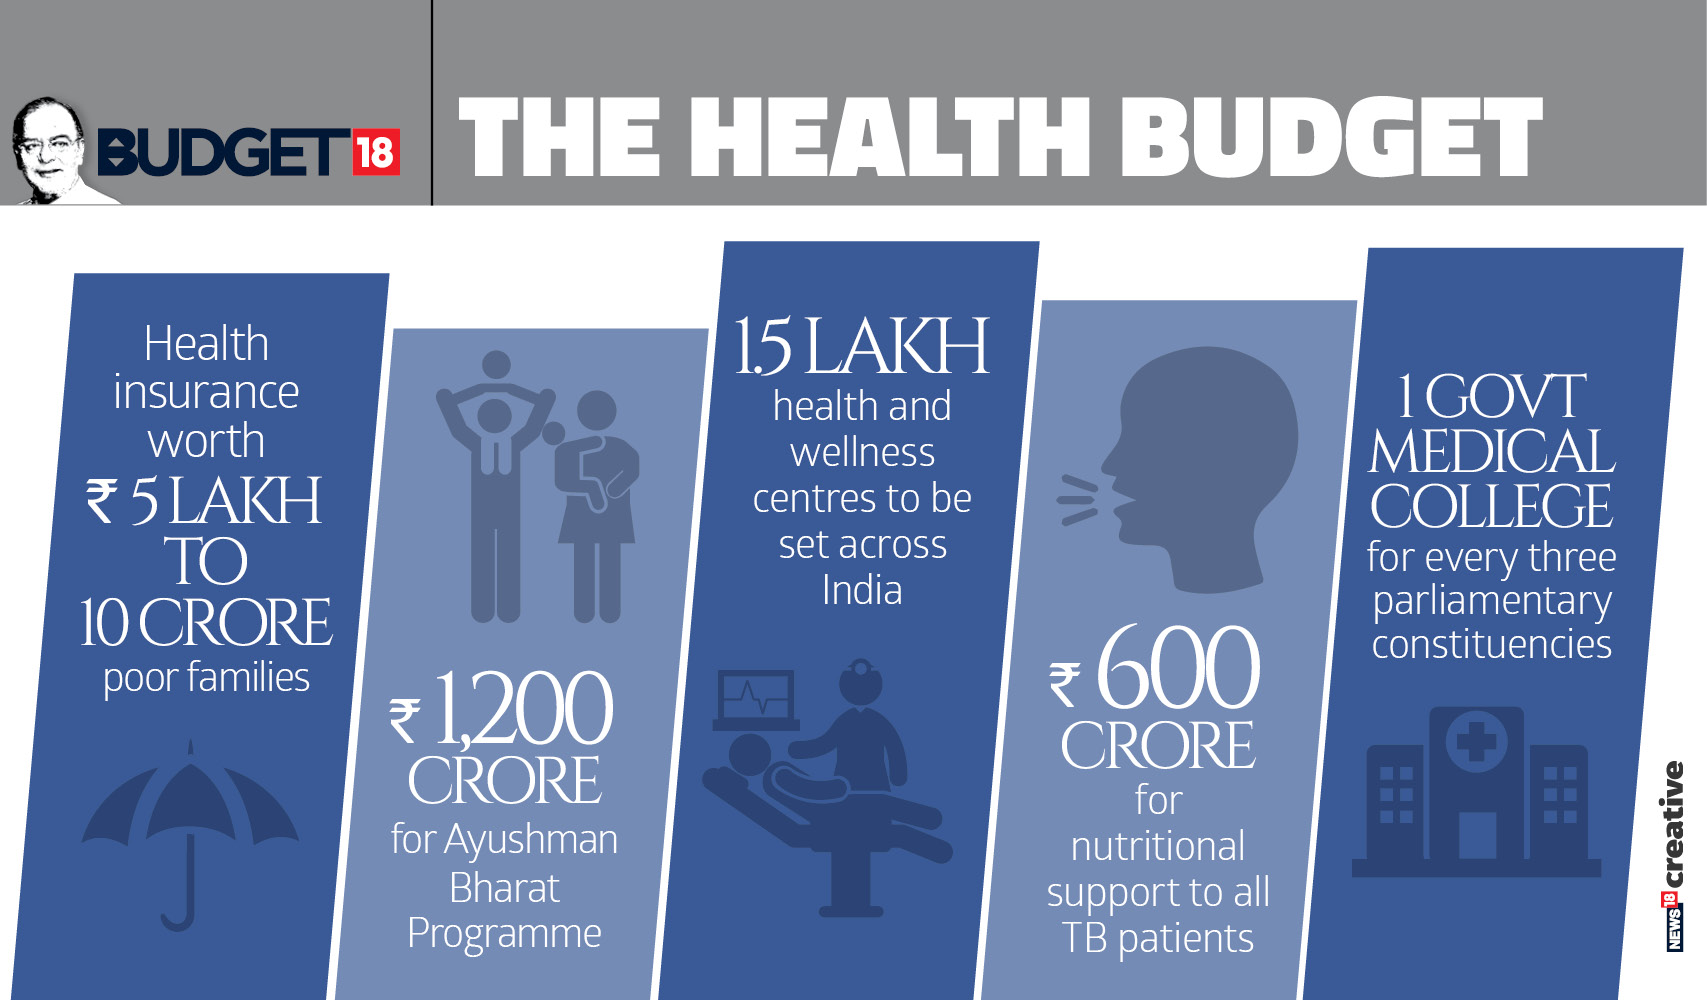 India to get world's largest health insurance scheme, many call it 'ModiCare'